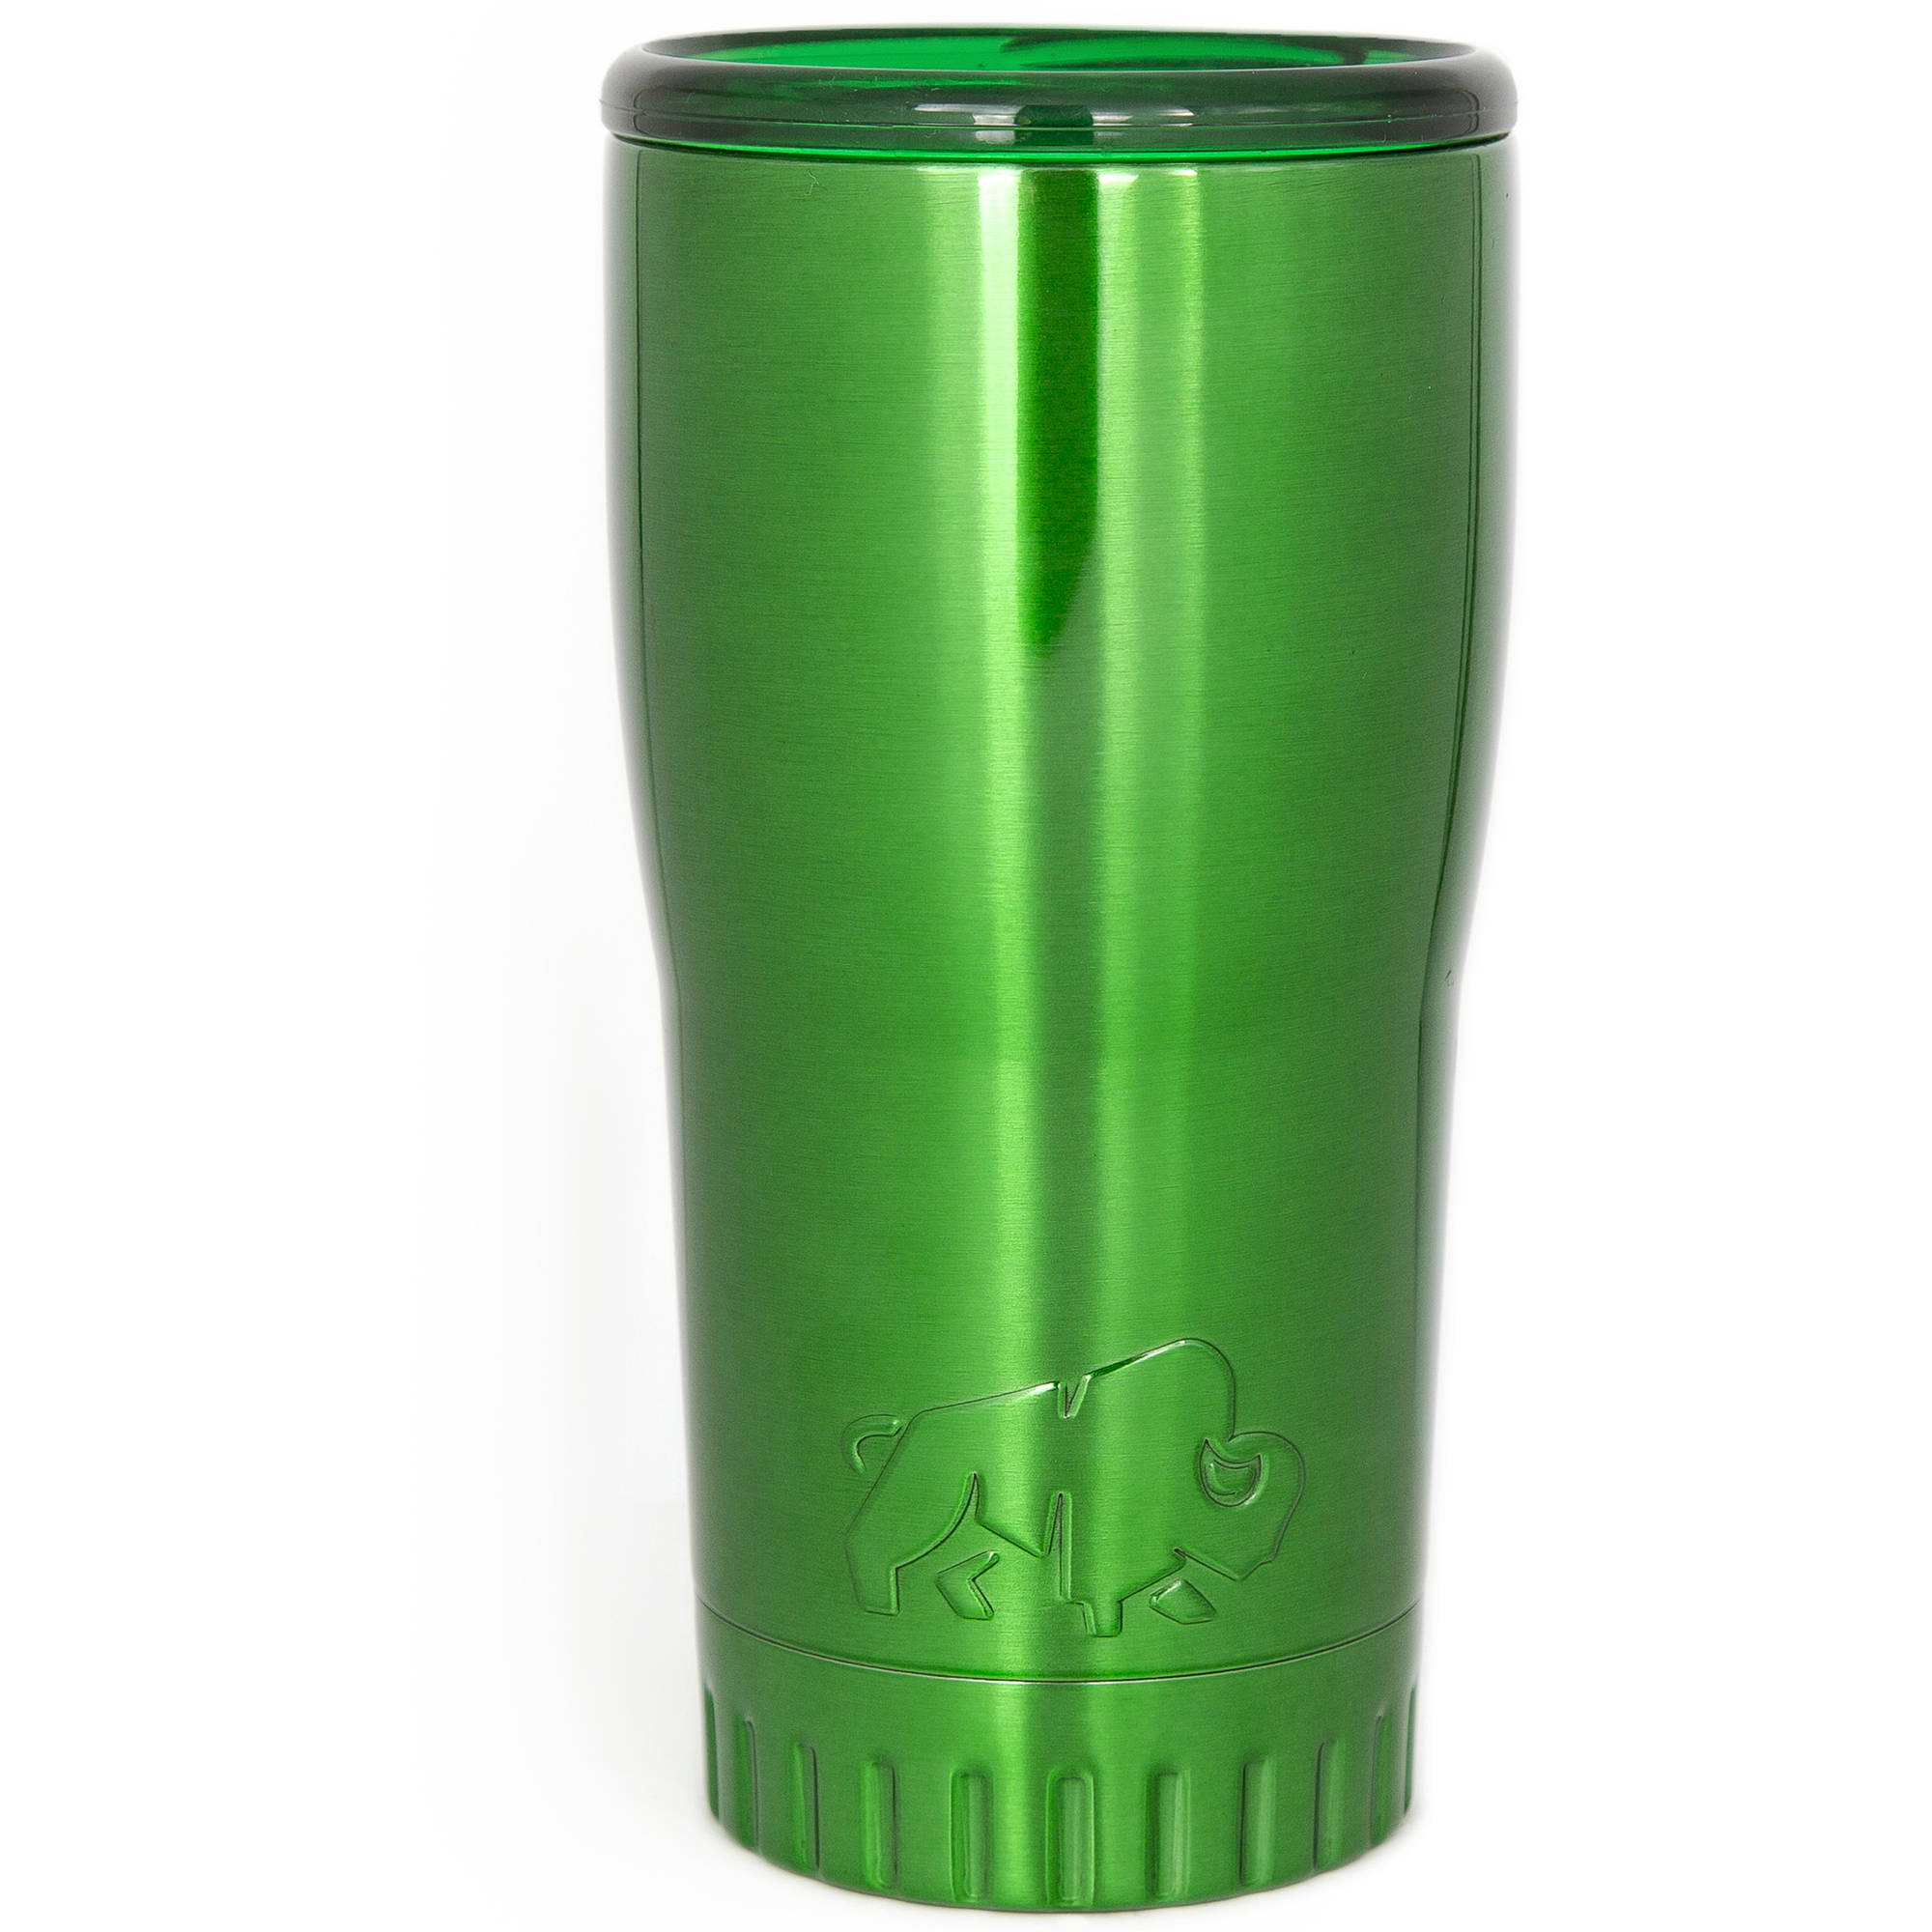 Silver Buffalo Stainless Steel Insulated Tumbler, 20 oz., Green